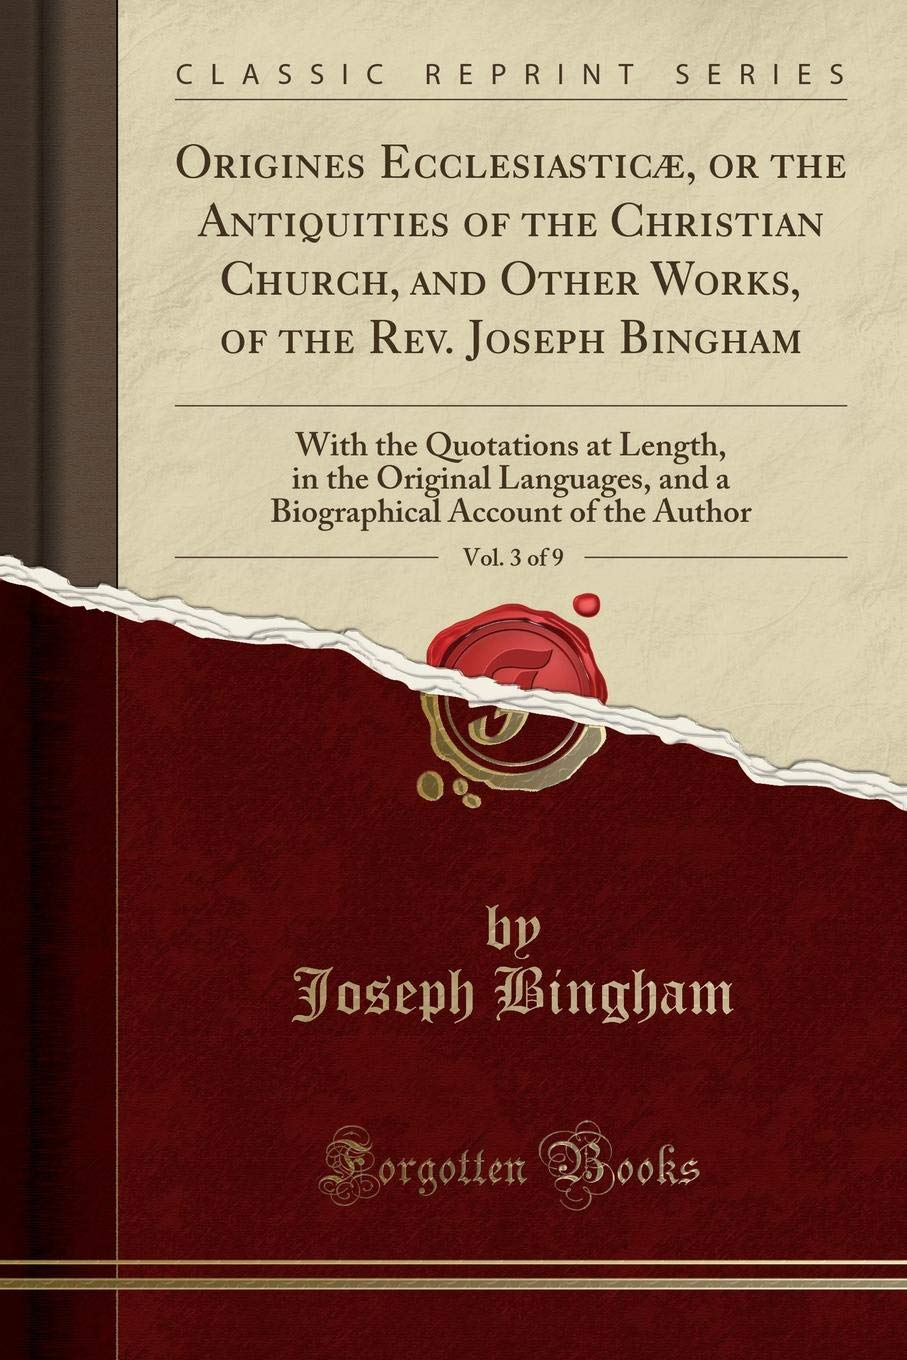 Read Online Origines Ecclesiasticæ, or the Antiquities of the Christian Church, and Other Works, of the Rev. Joseph Bingham, Vol. 3 of 9: With the Quotations at ... Account of the Author (Classic Reprint) pdf